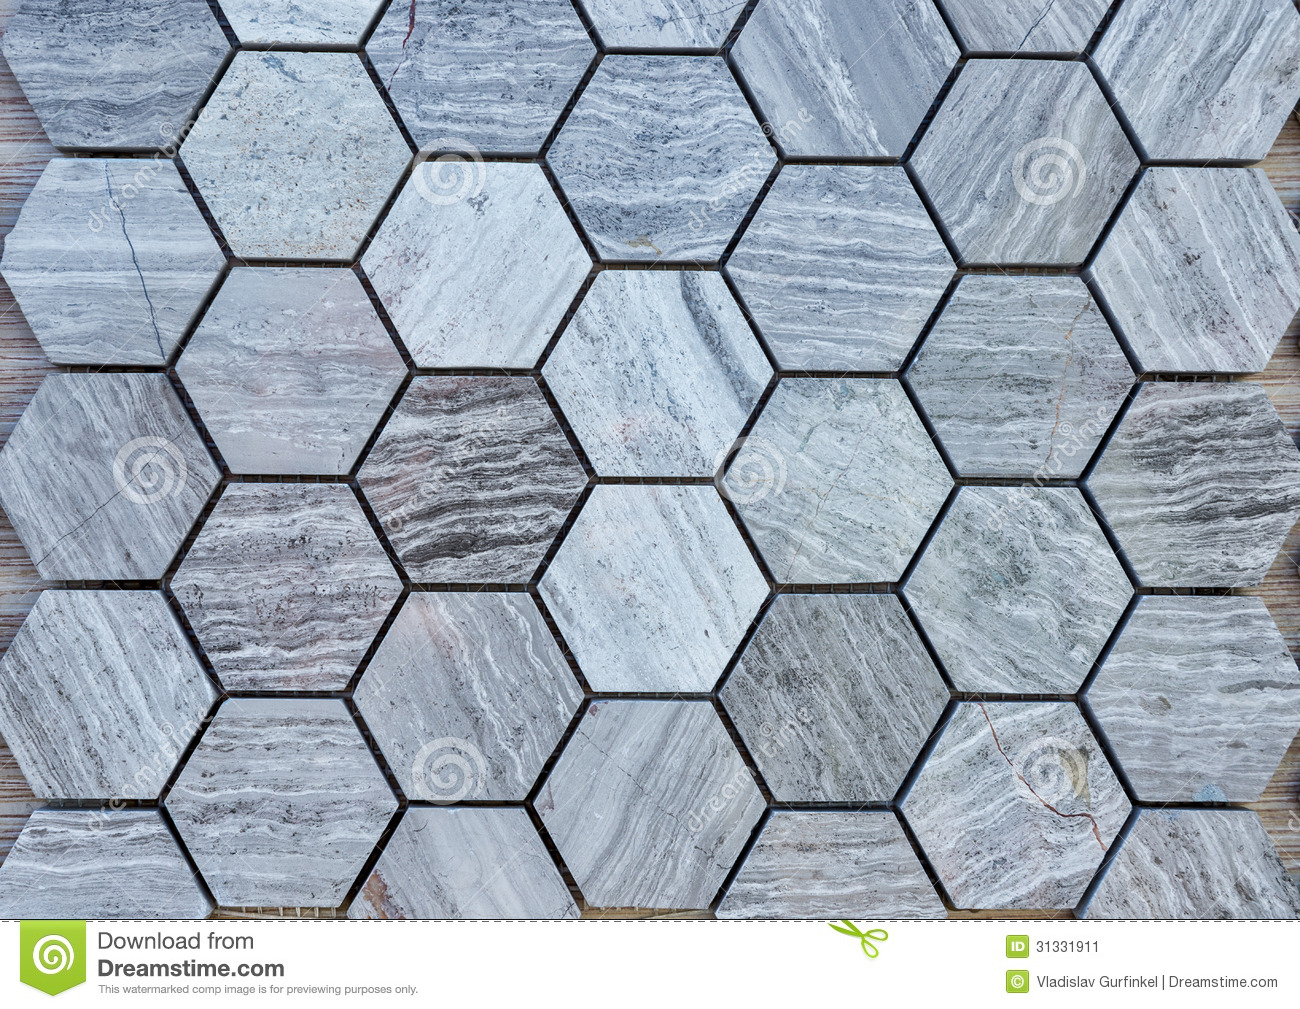 Colorful Stone Tiles Pattern Stock Image - Image: 31331911